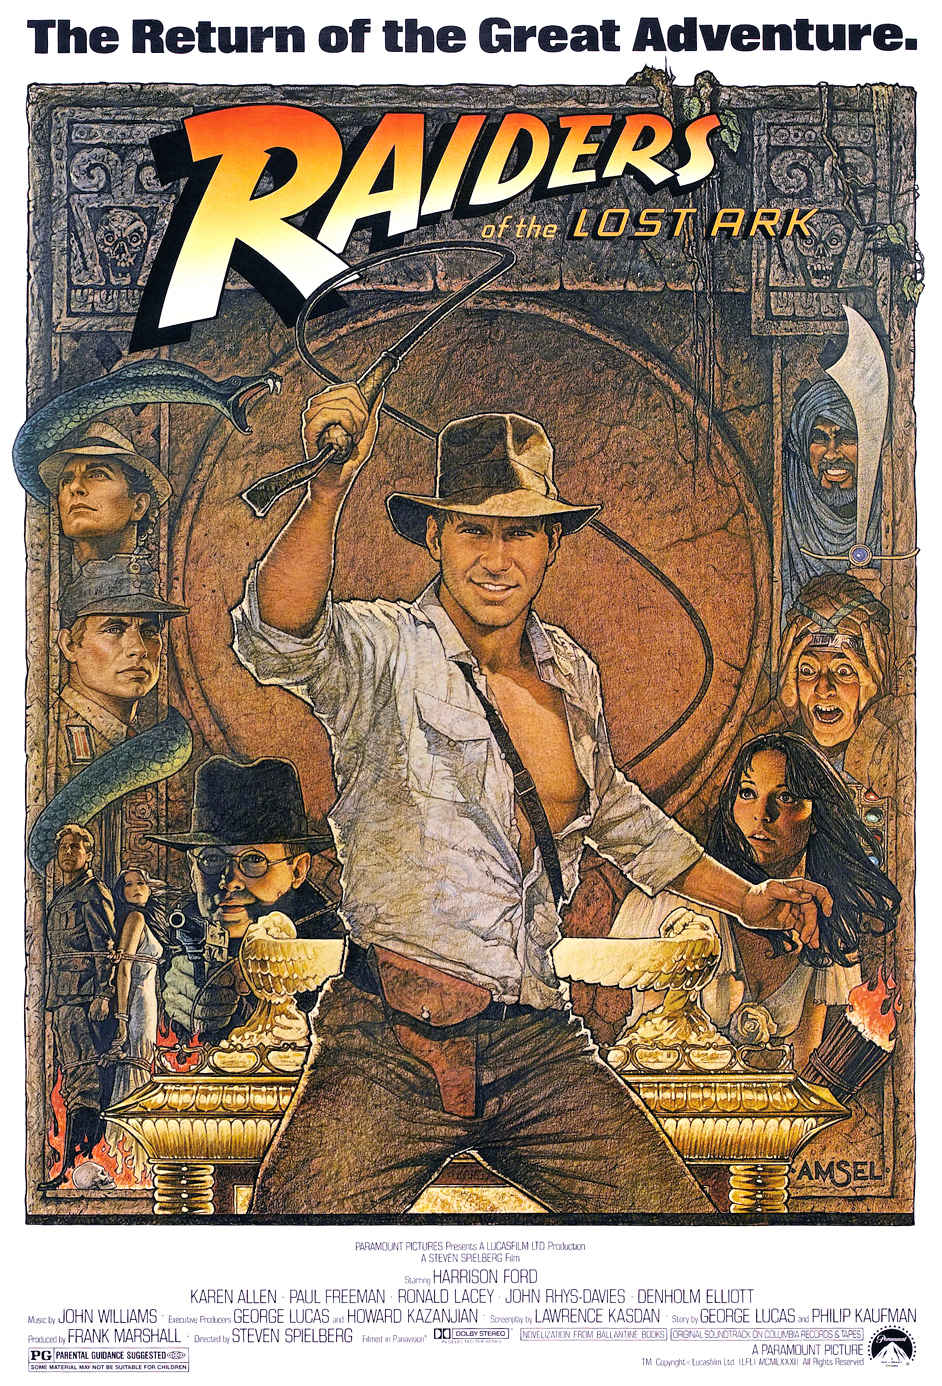 #15: Raiders of the Lost Ark (1981)